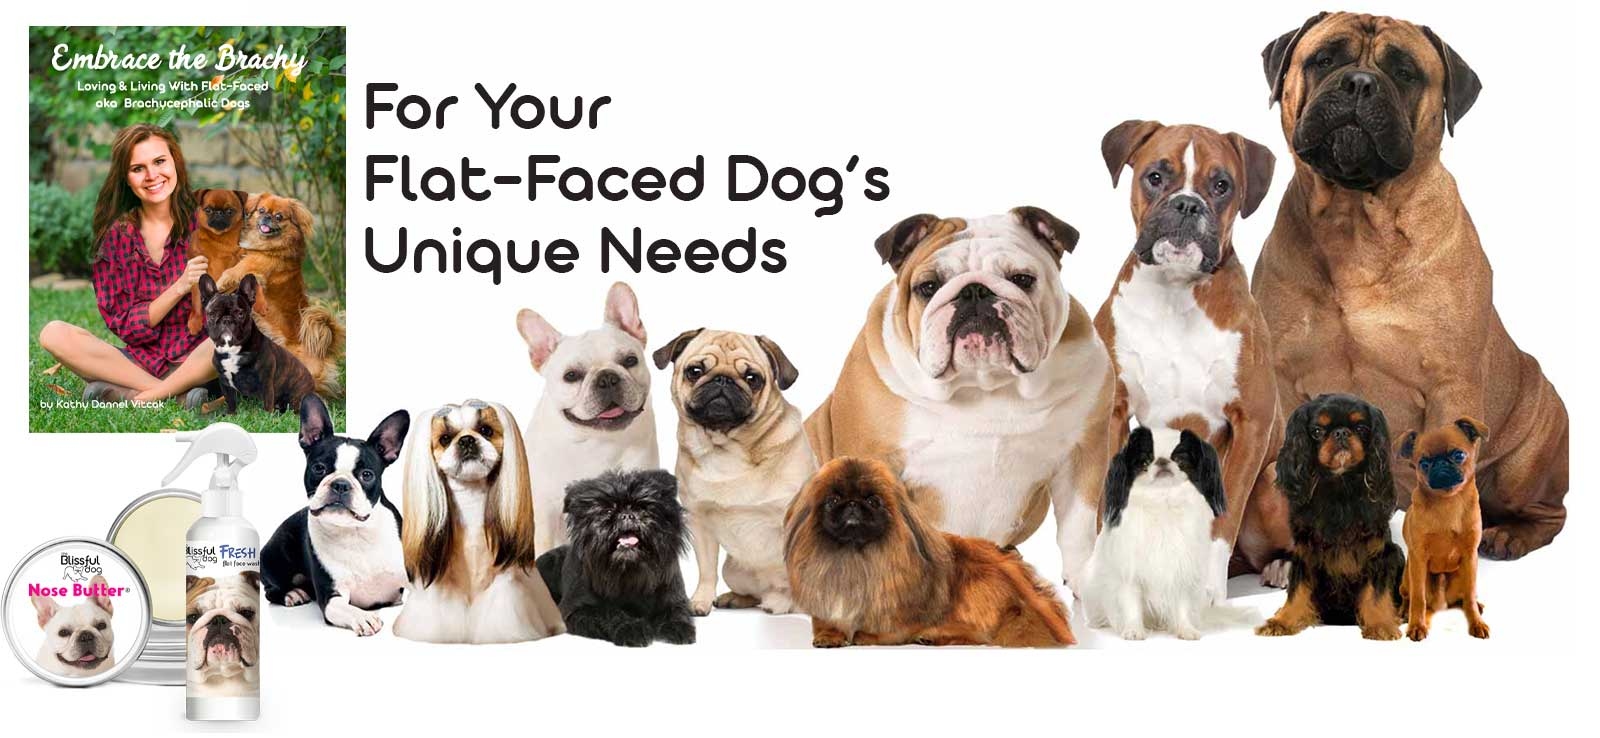 caring for flat-faced dogs